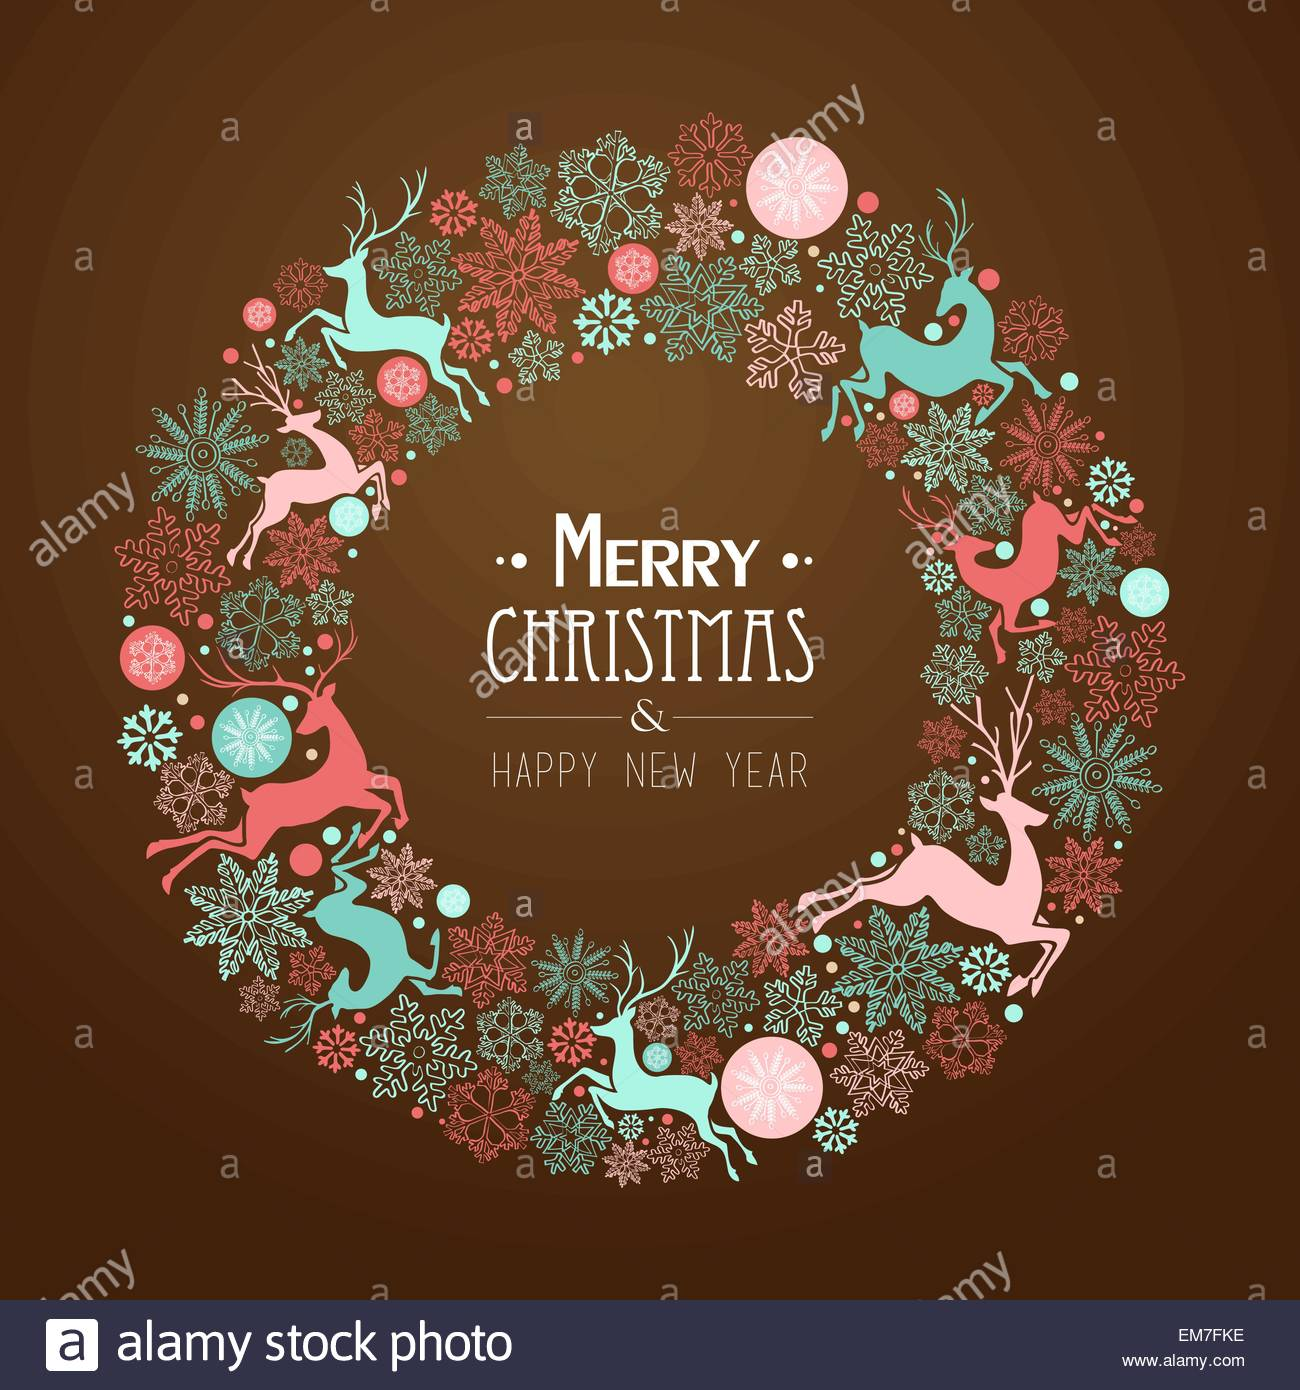 Merry christmas and happy new year greeting card stock vector art merry christmas and happy new year greeting card m4hsunfo